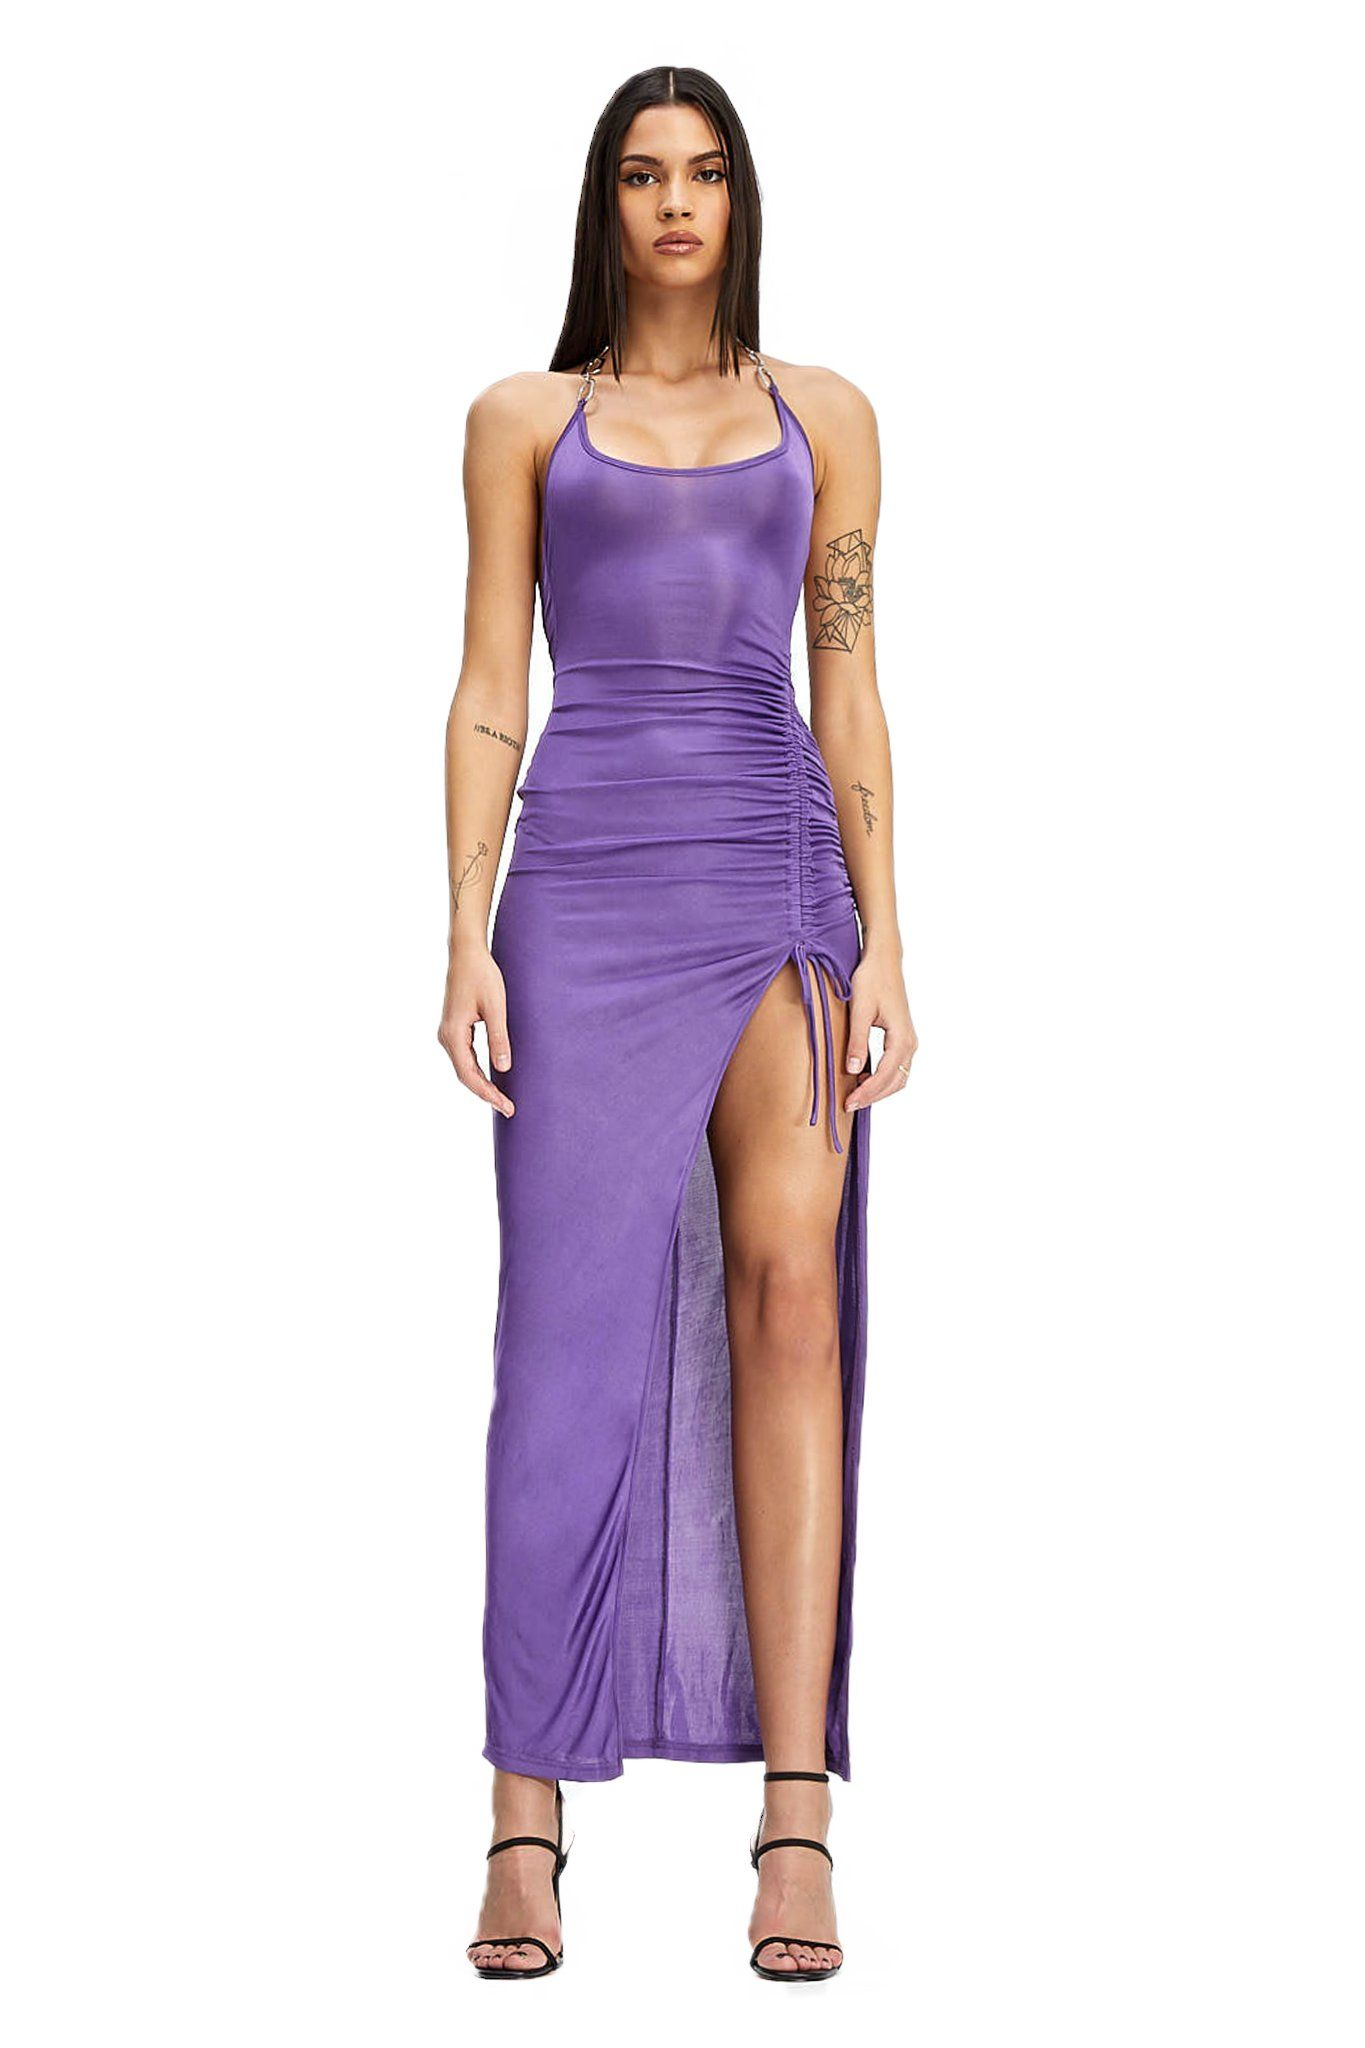 Halley dress dresses fitted maxi dress fashion